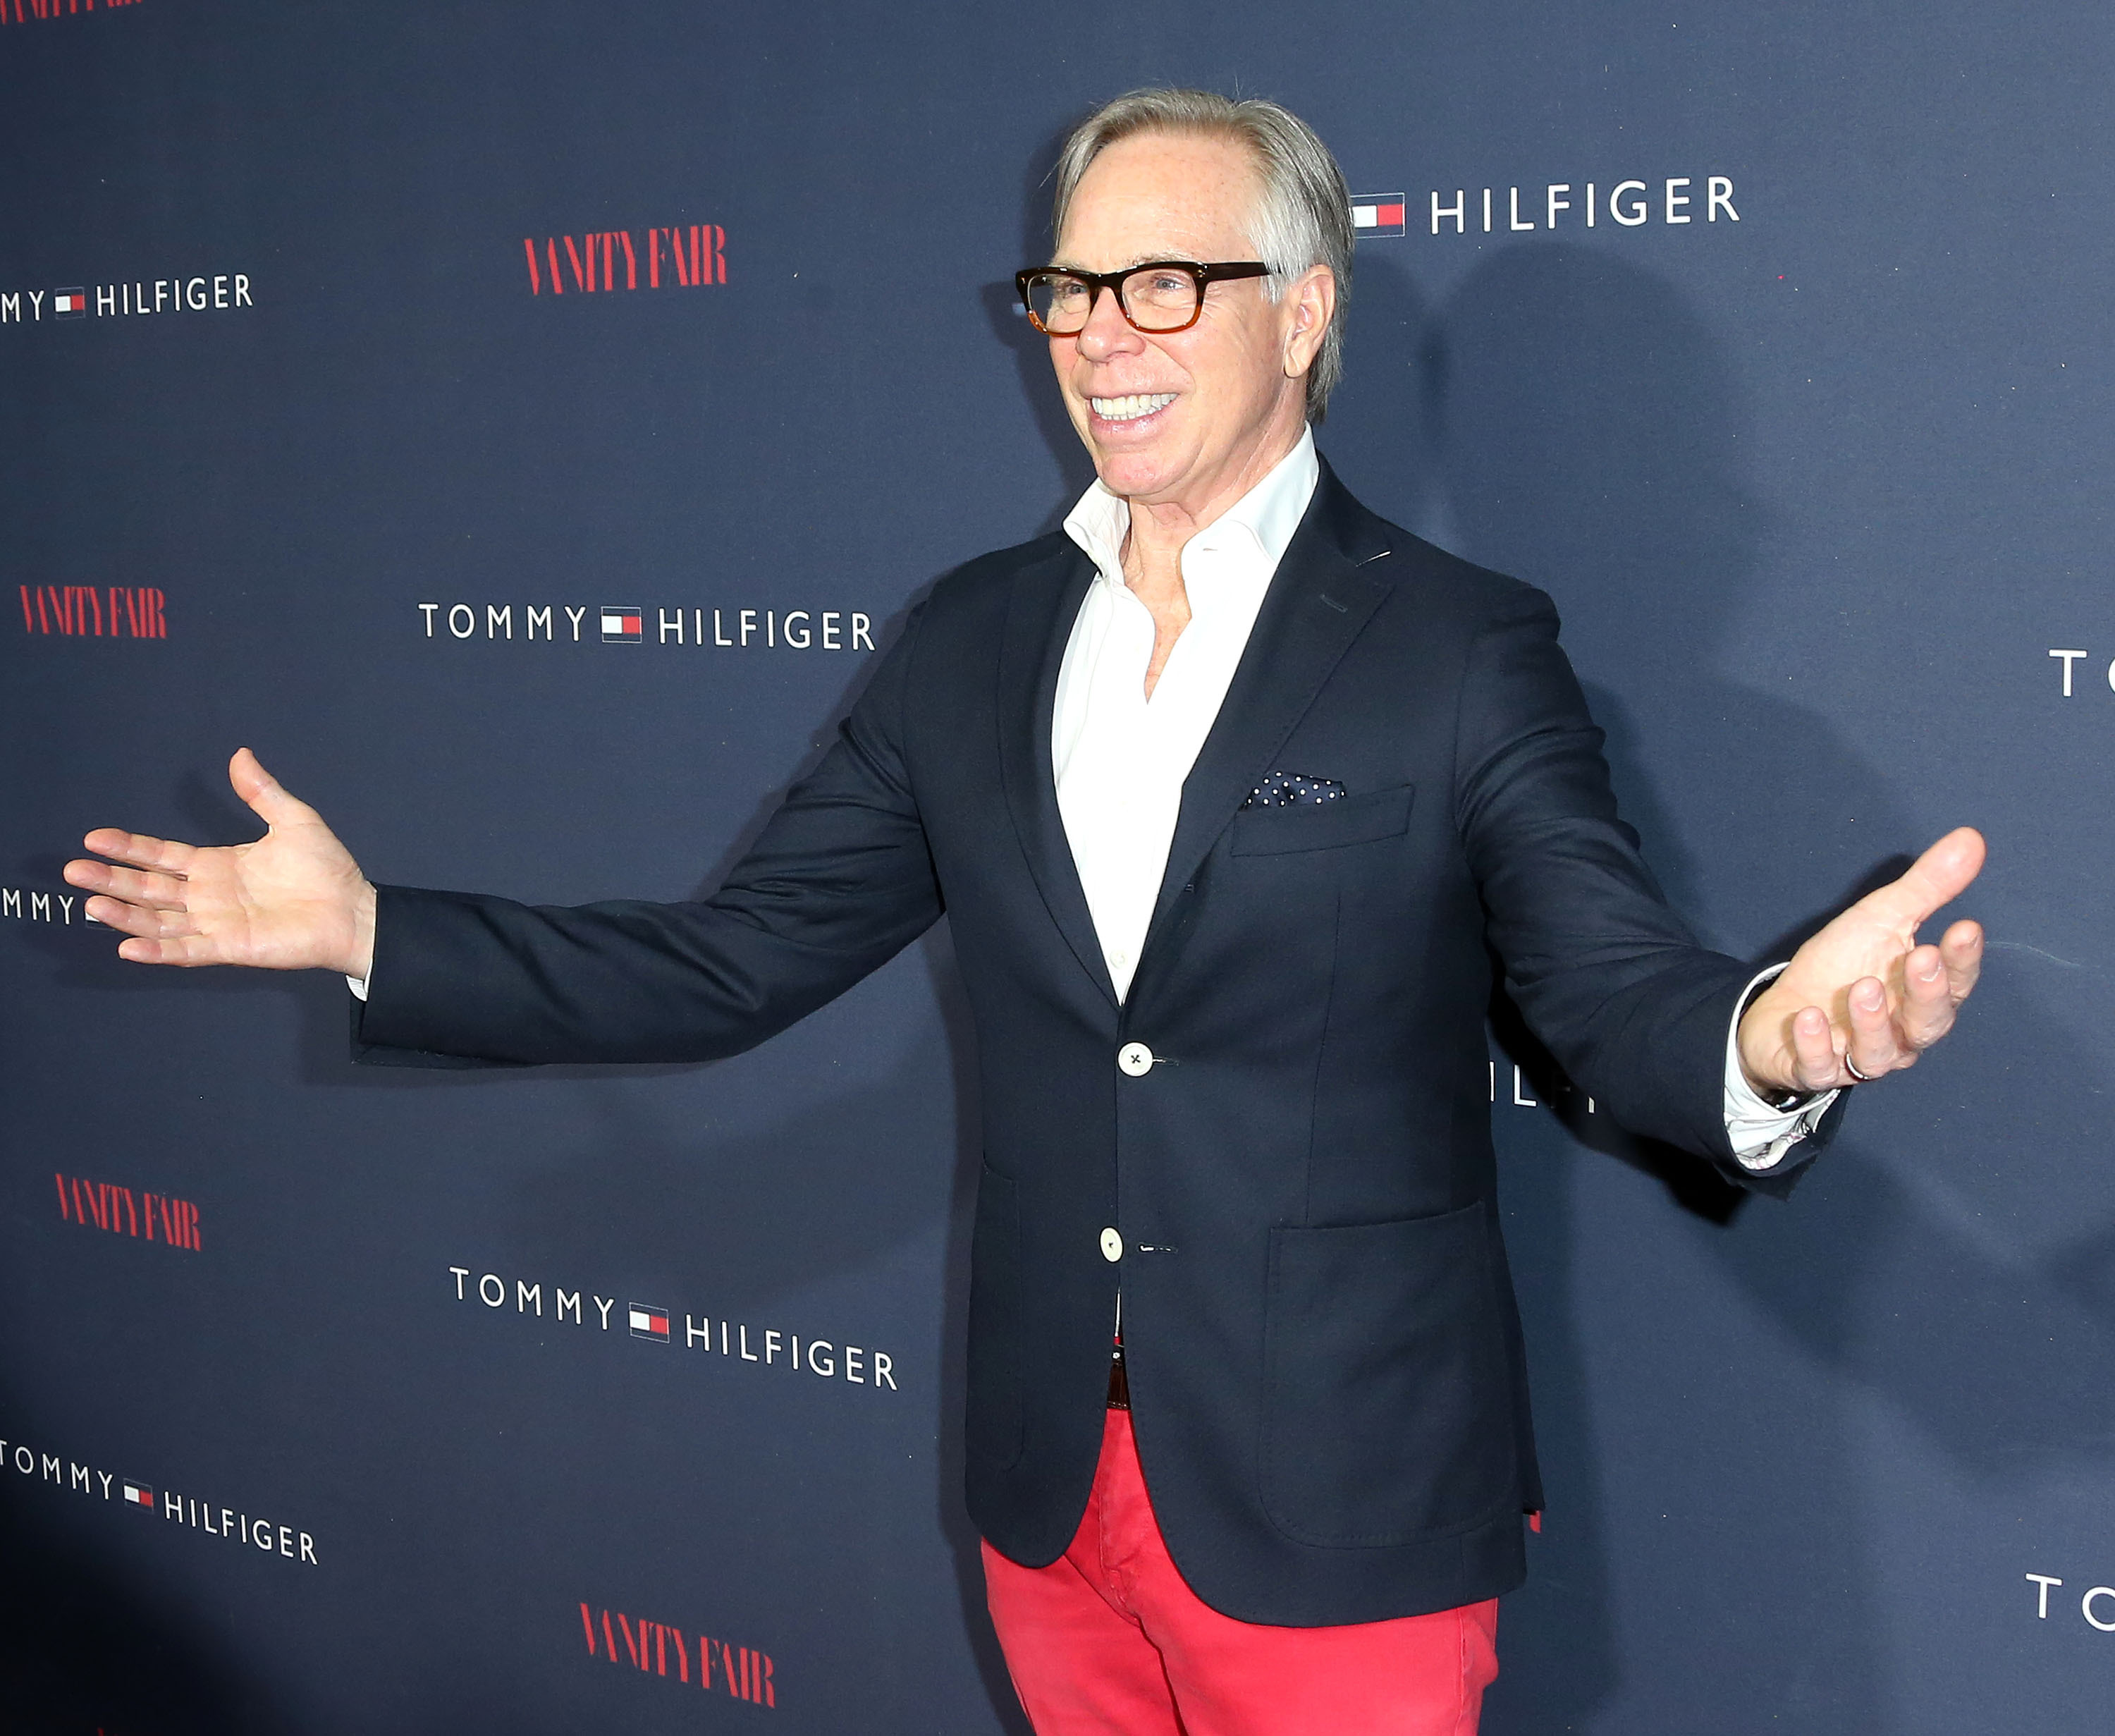 Pictures Of Tommy Hilfiger